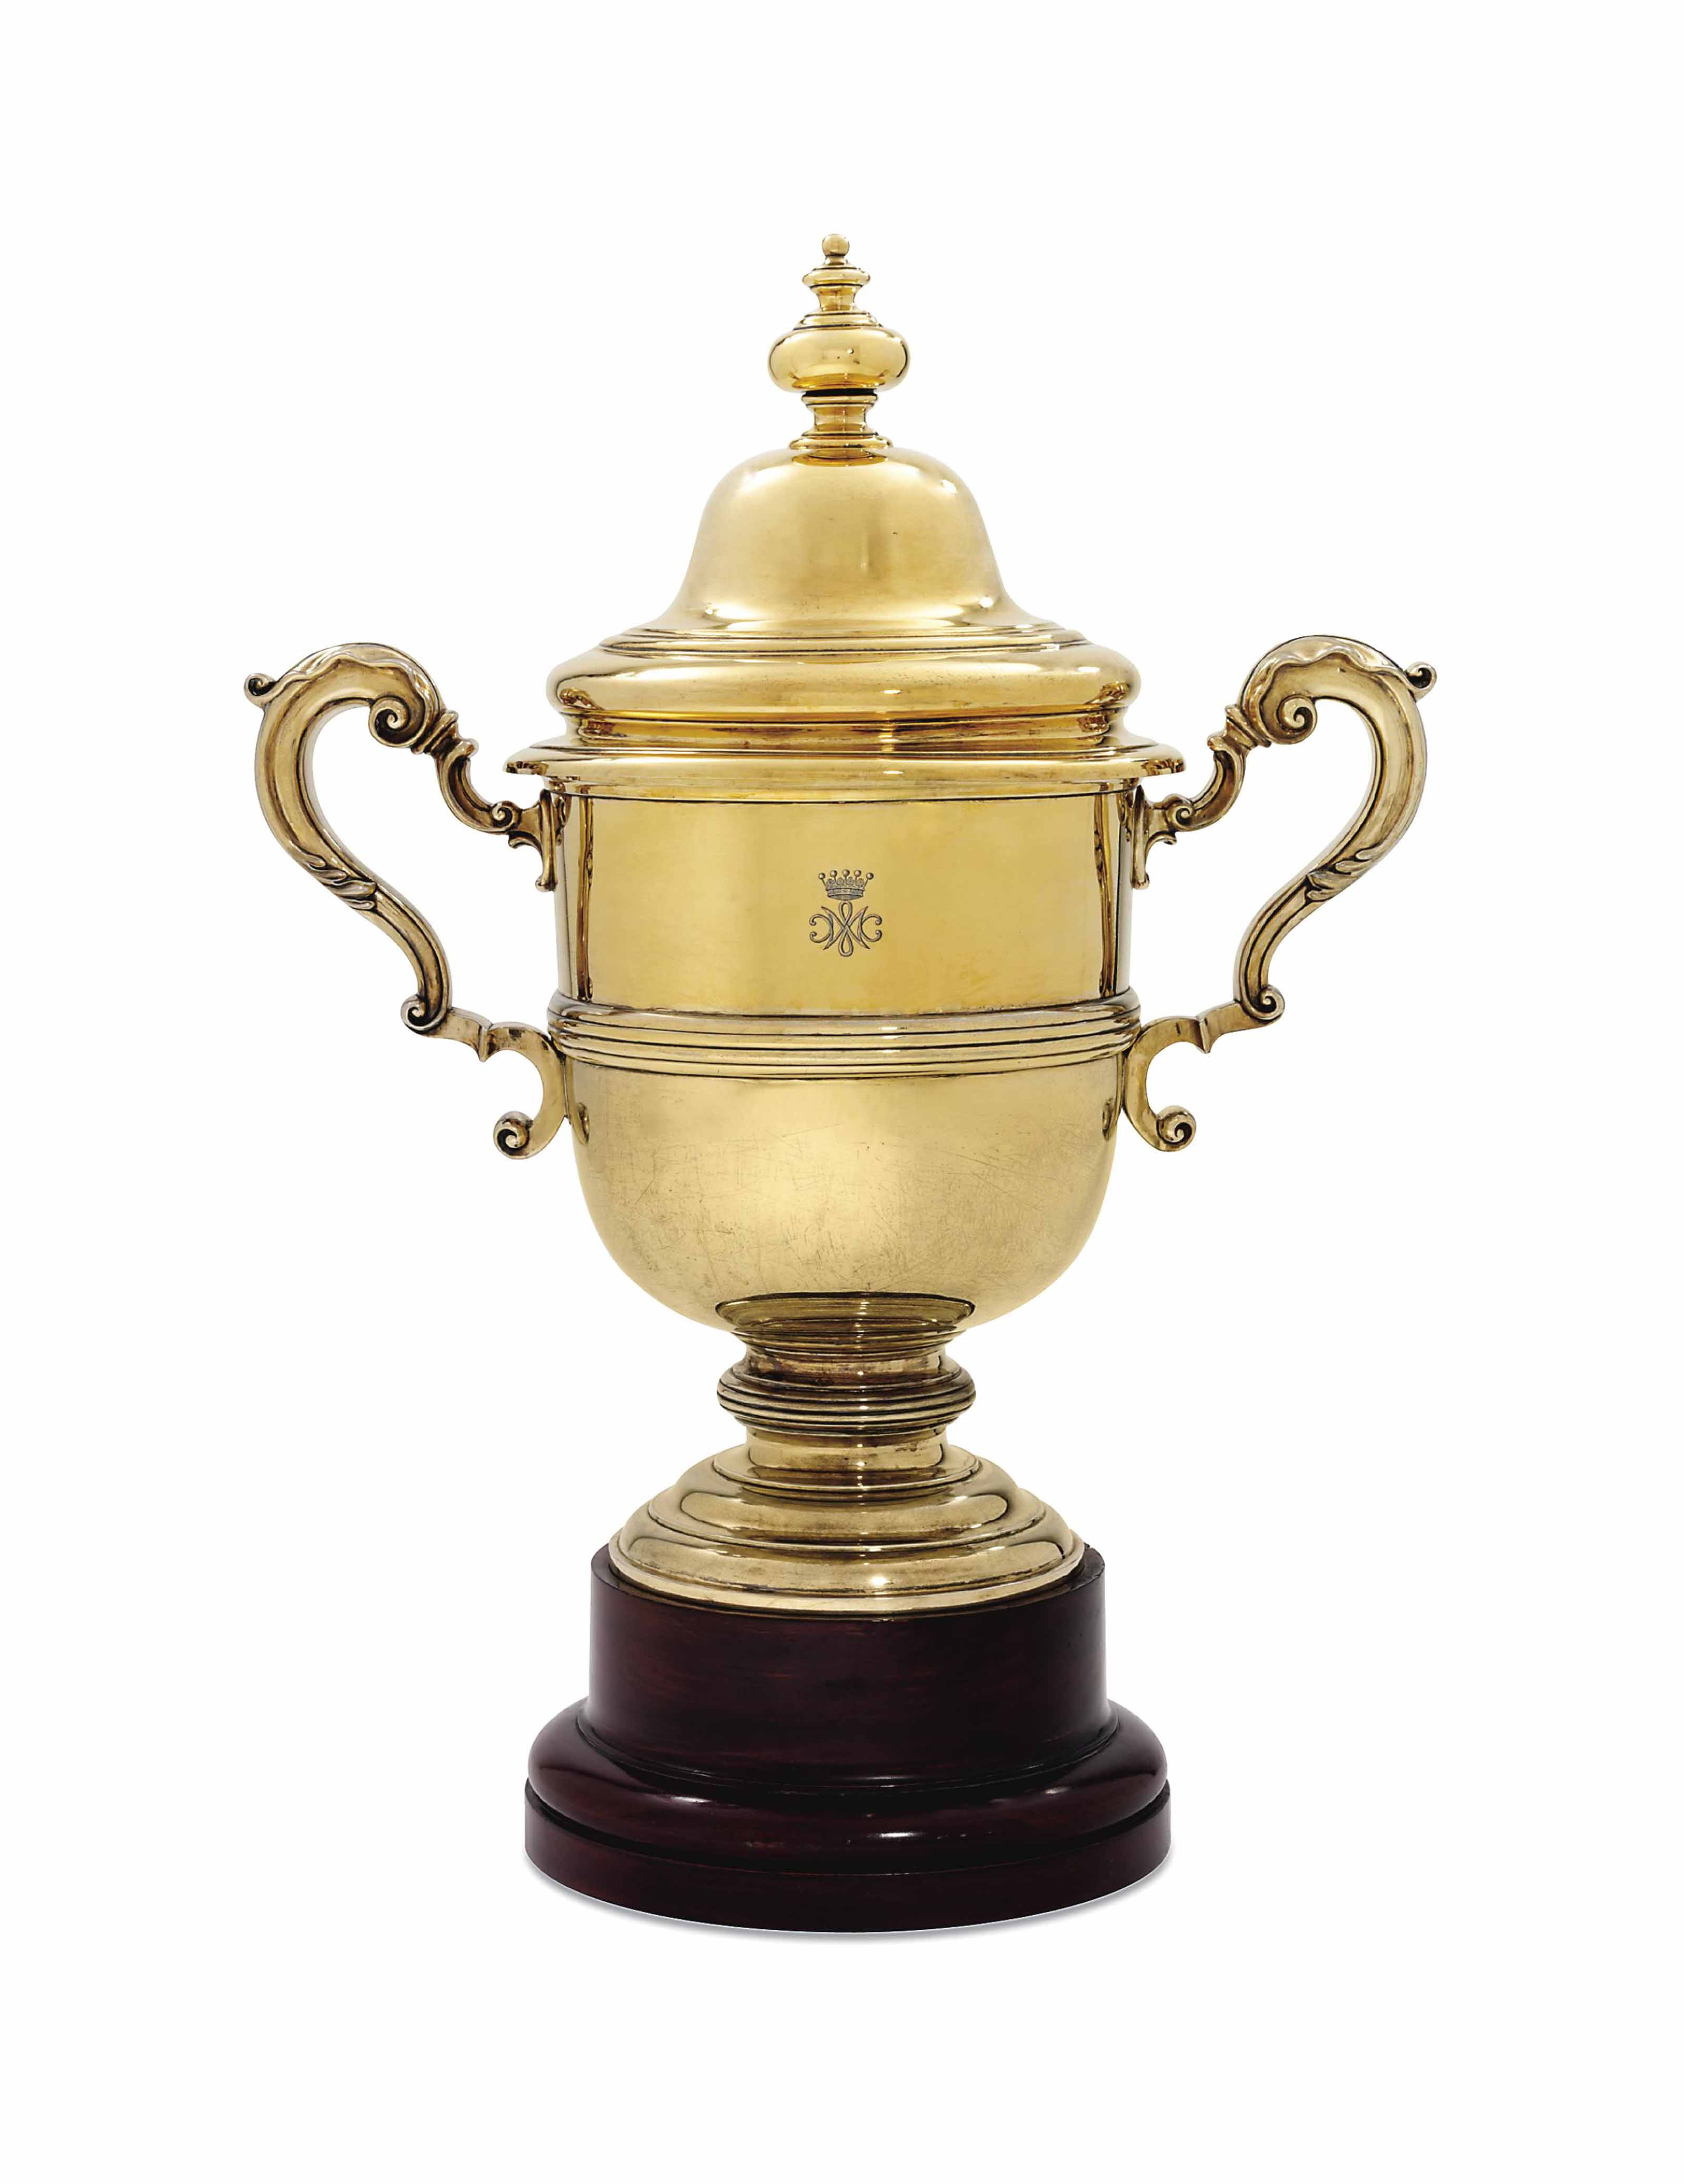 A GEORGE V SILVER-GILT CUP AND COVER